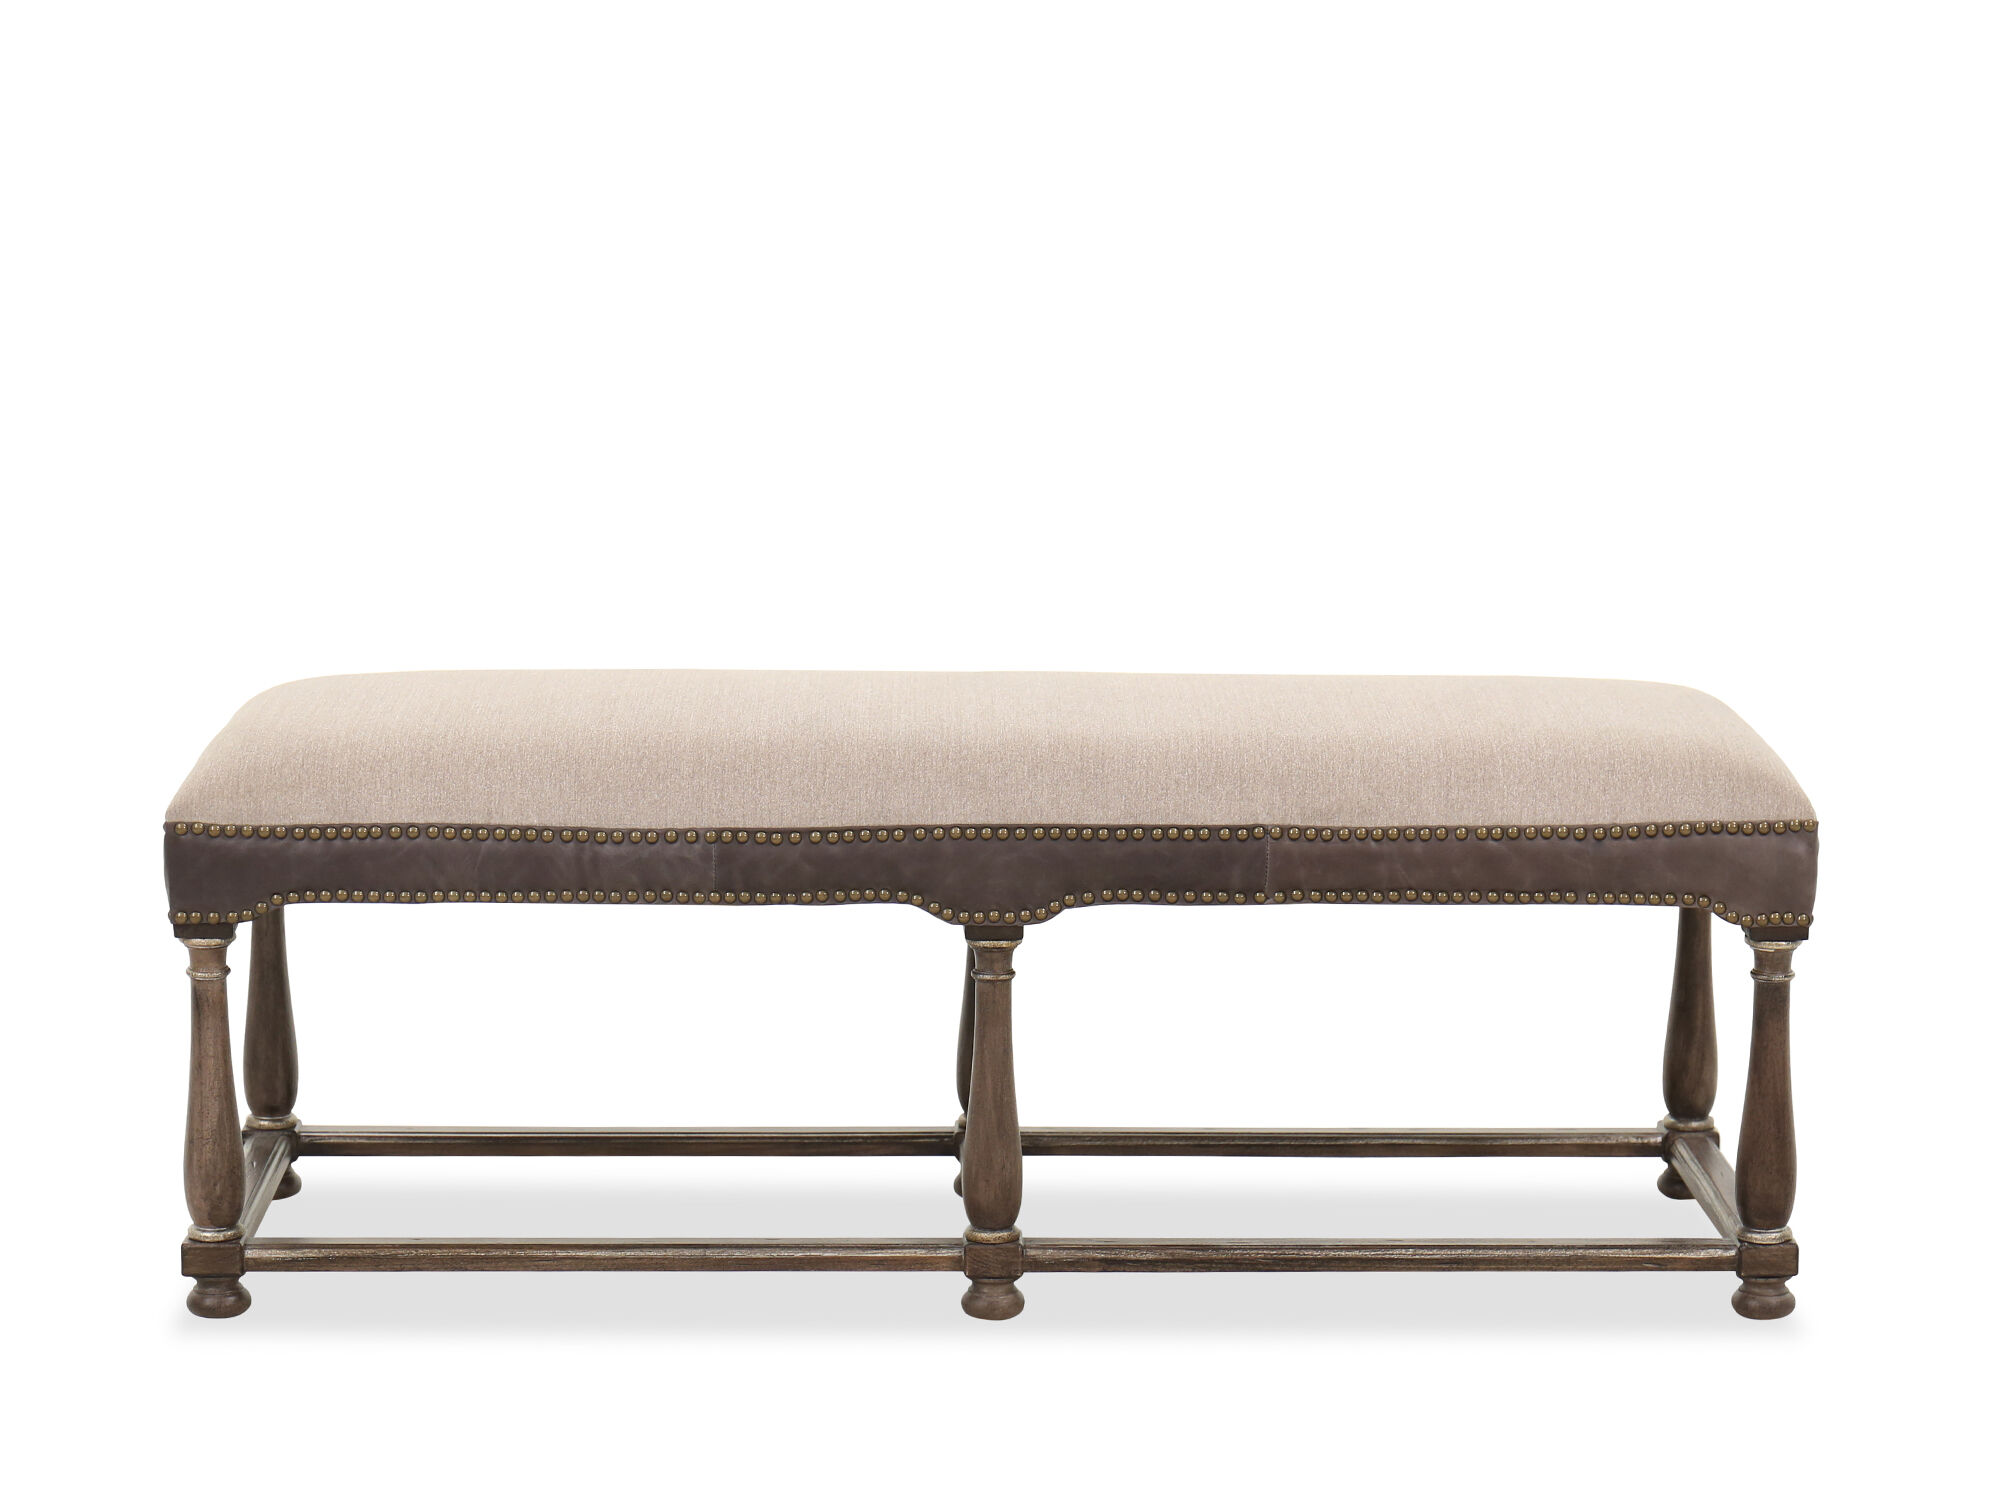 Nailhead Trimmed Traditional Bench In Lenox Taupe/ Heathered Lambswool    Mathis Brothers Furniture